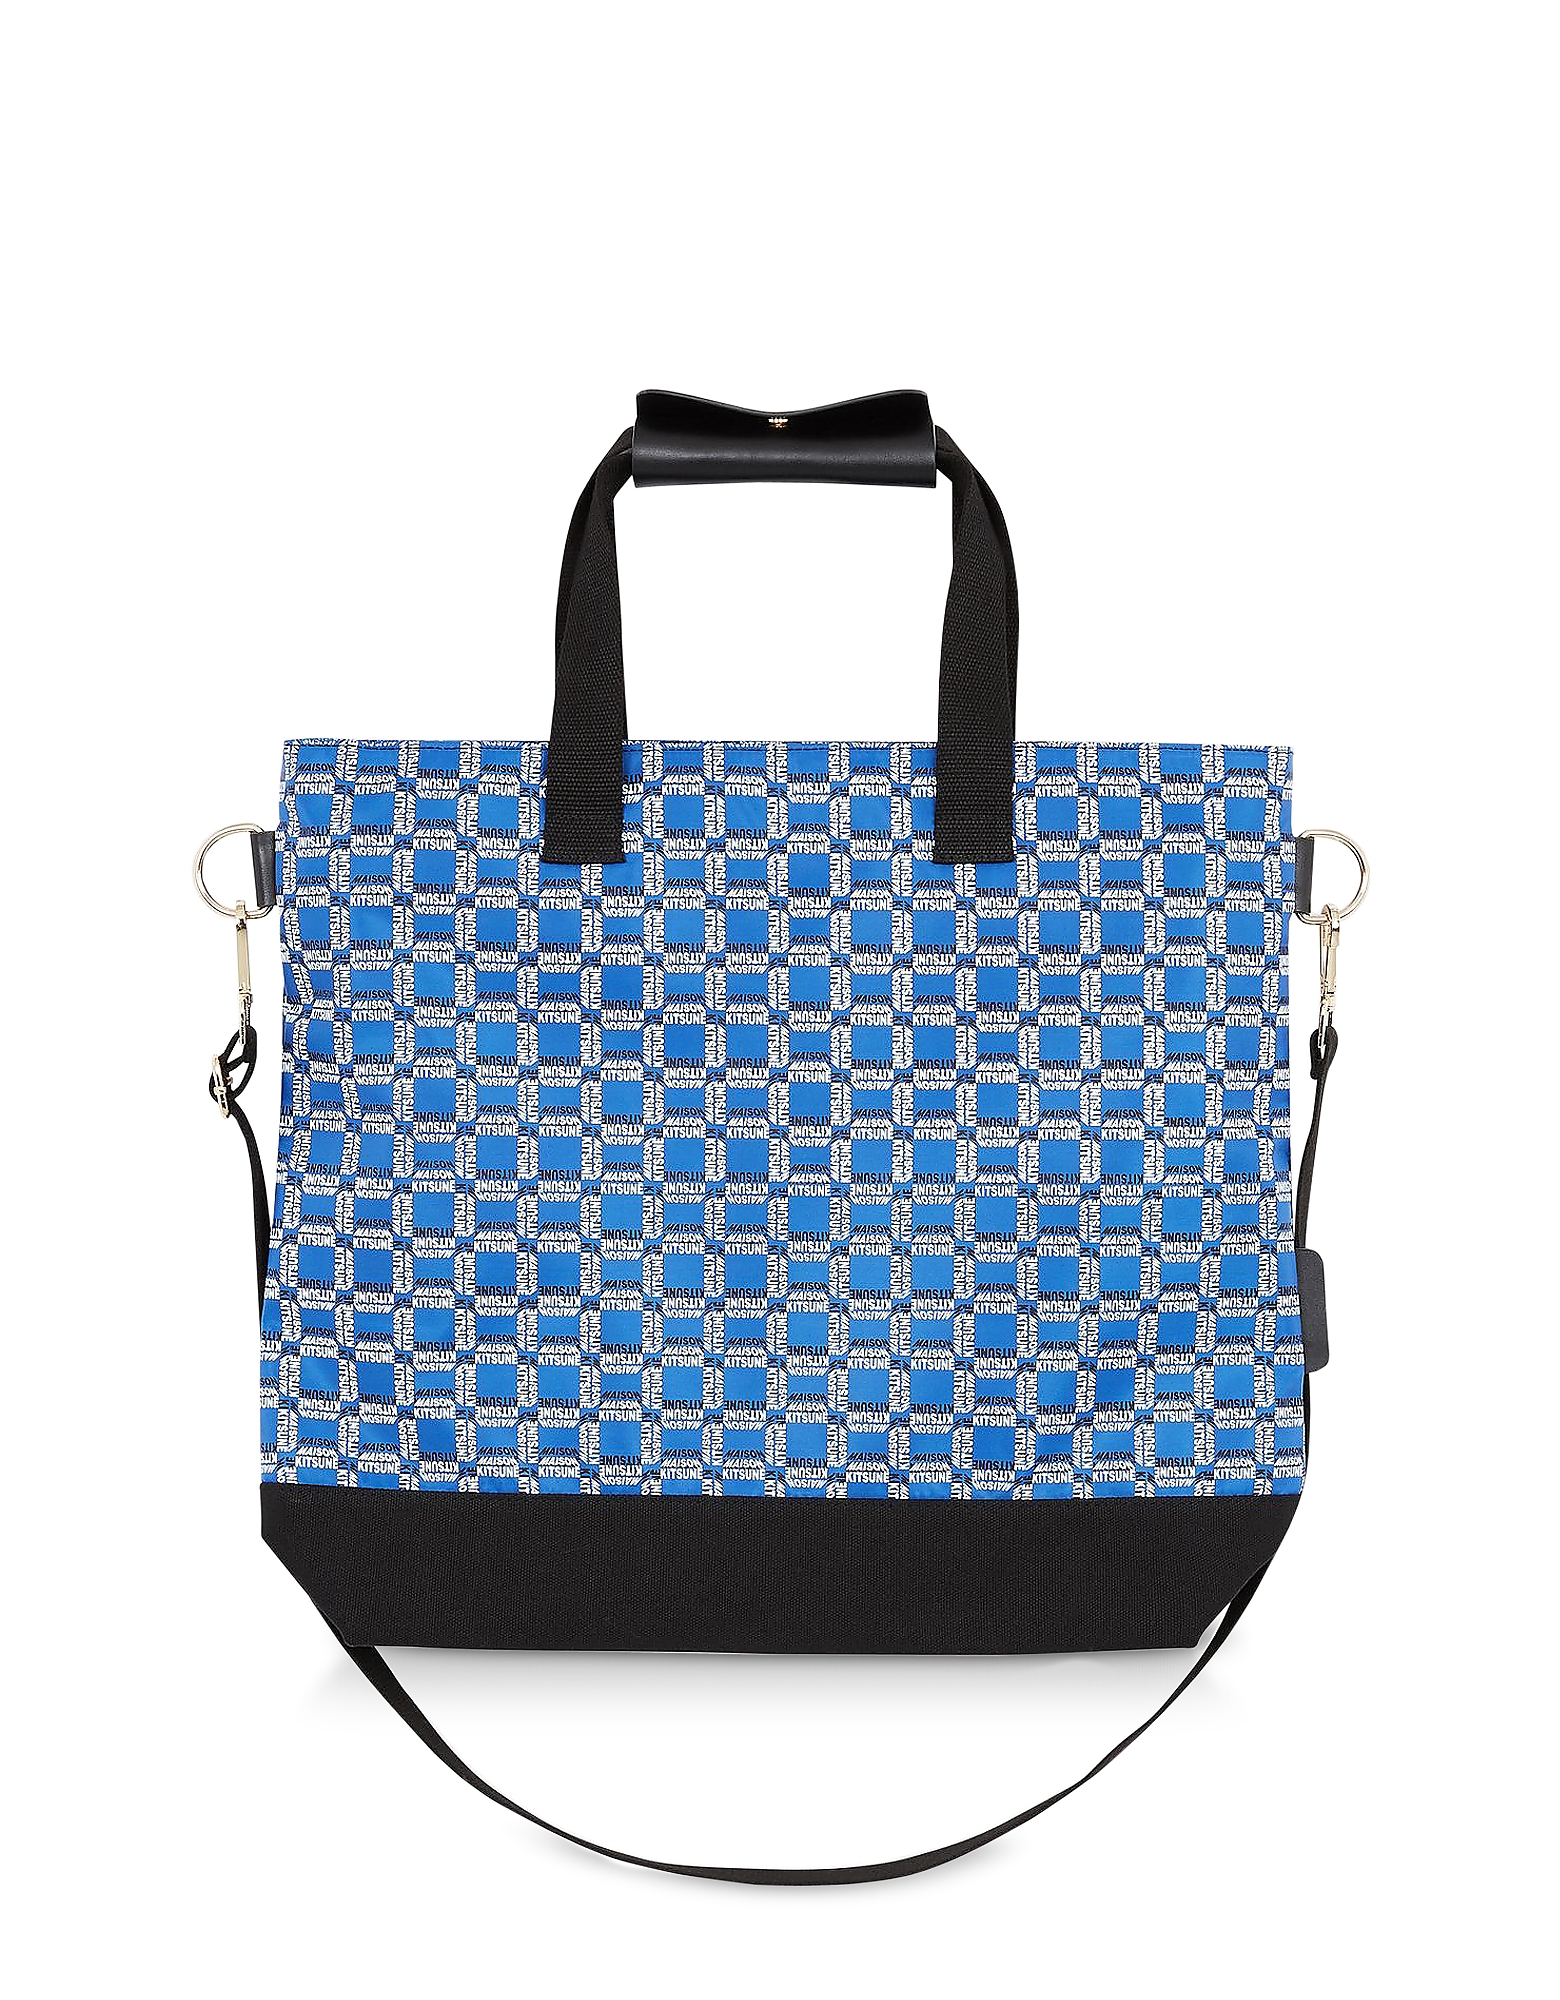 All Over Rectangle Printed Nylon Tote Bag